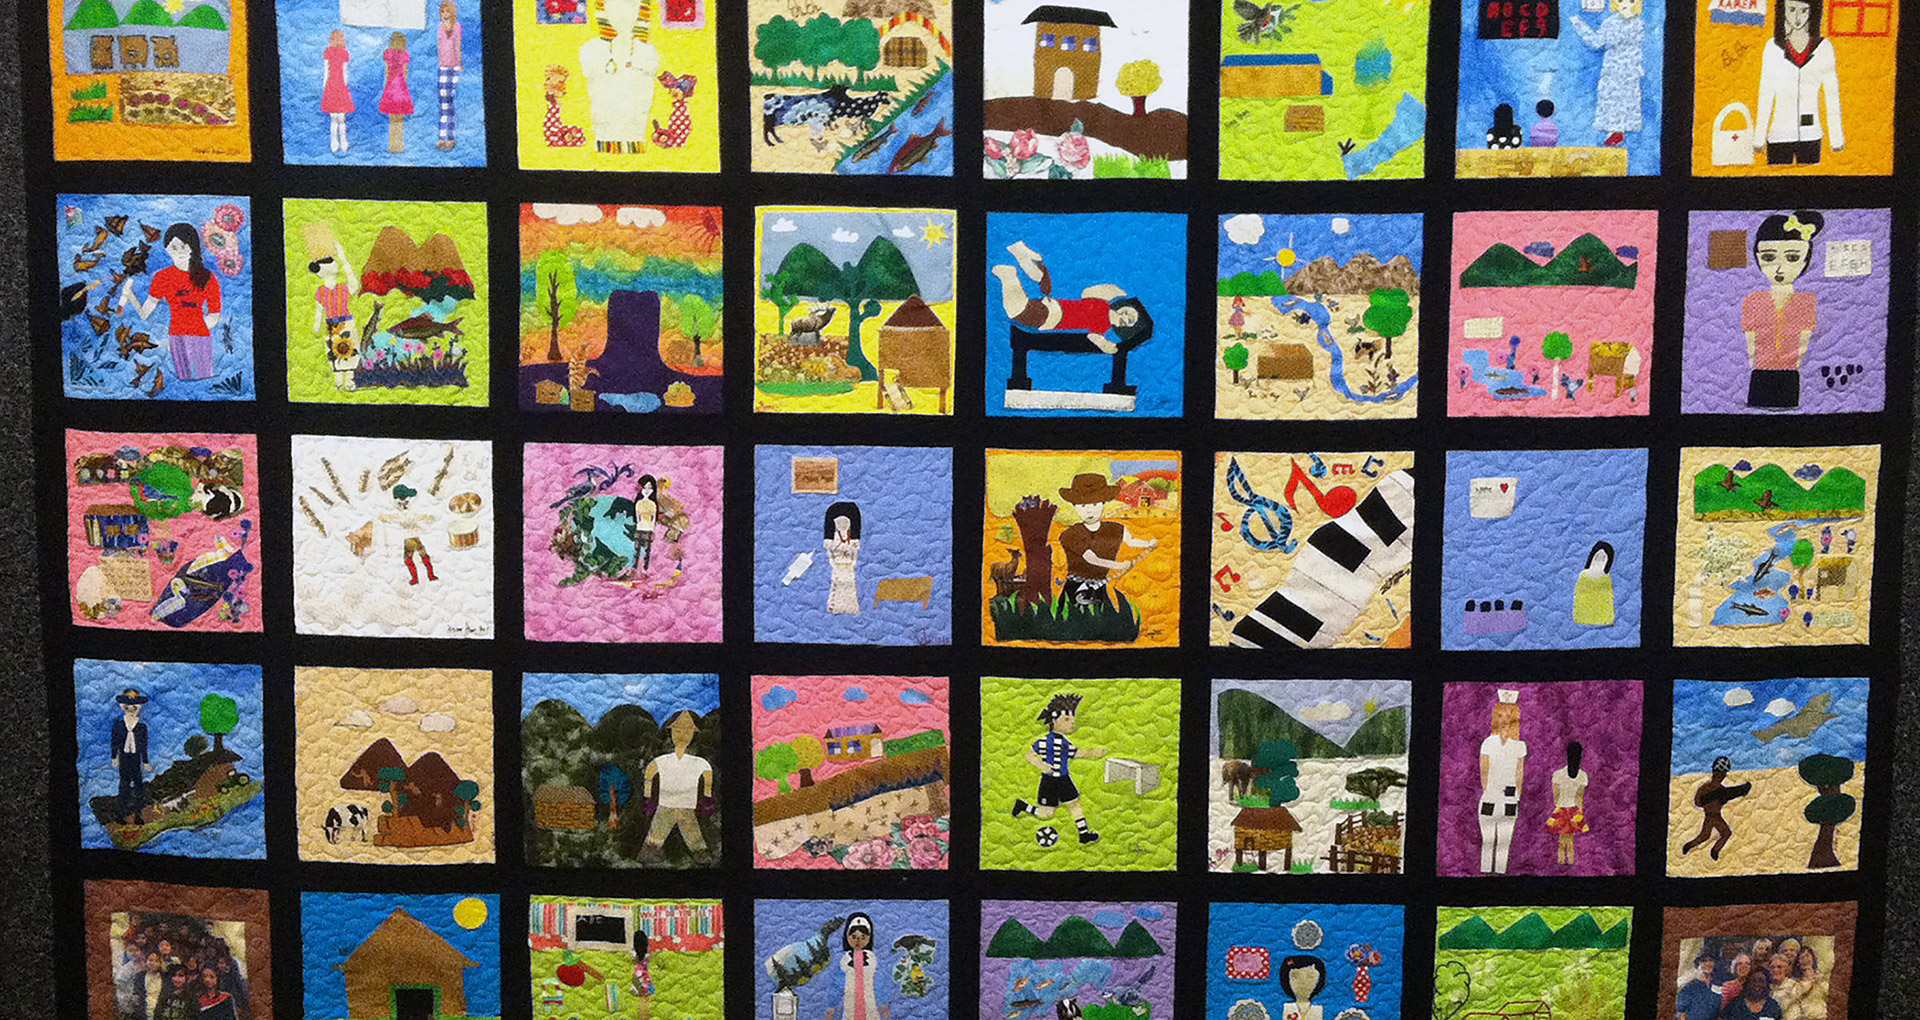 A tighter shot of the quilt. Courtesy Joslyn Art Museum